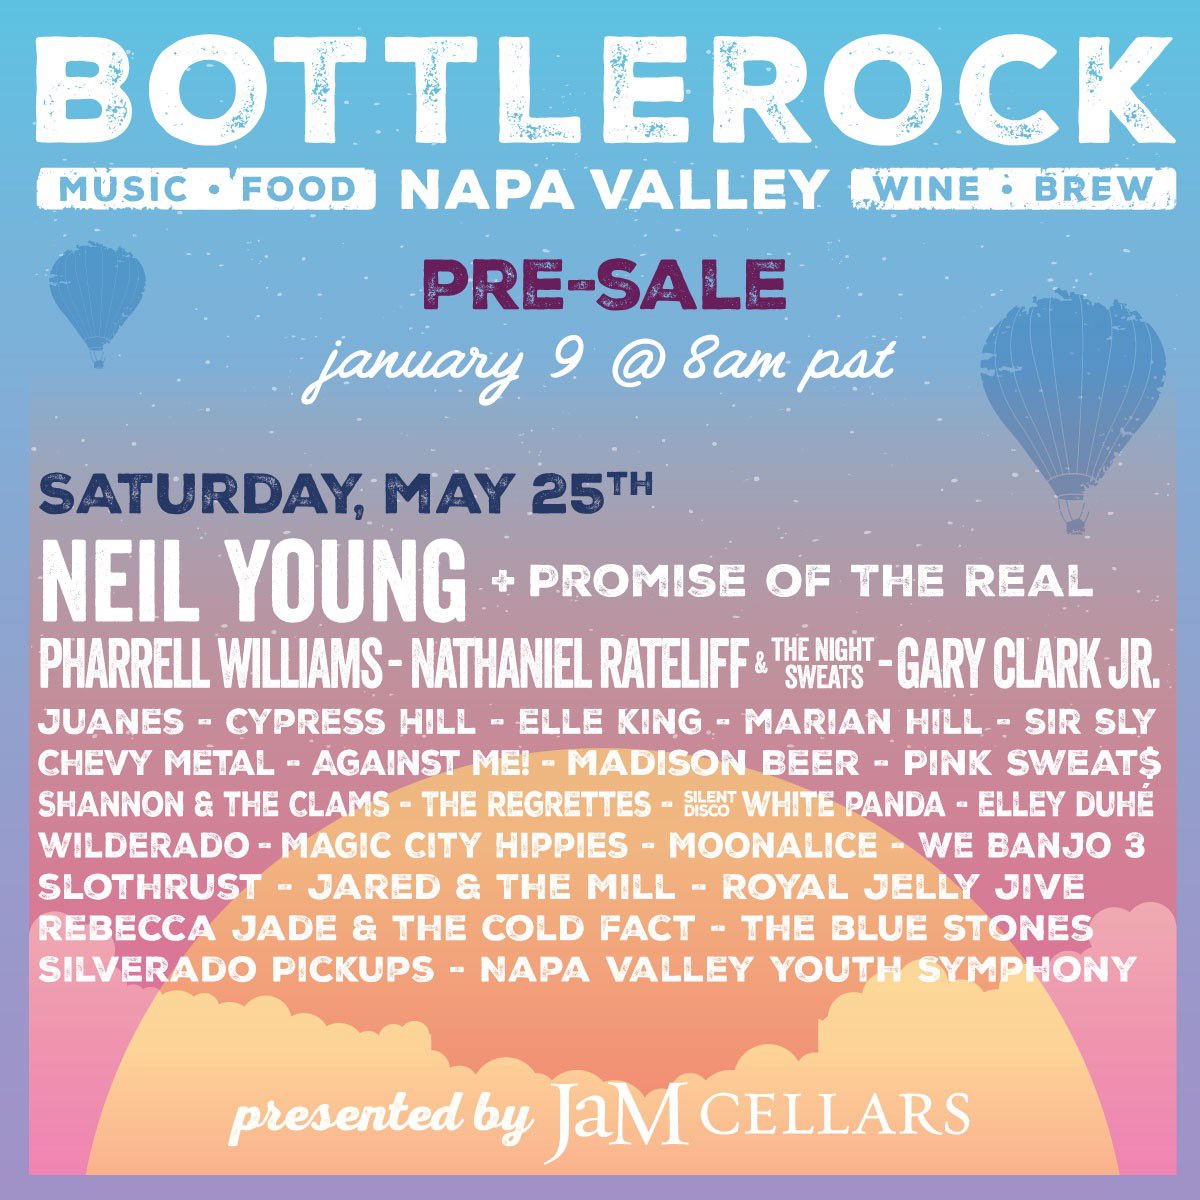 I'll be performing at @Bottlerocknapa Saturday May 25th. Be the first to get single day passes here: …https://bottlerocknapavalley.frontgatetickets.com/event/x96ozmspxho4h30a… Enter code: PharrellWilliams